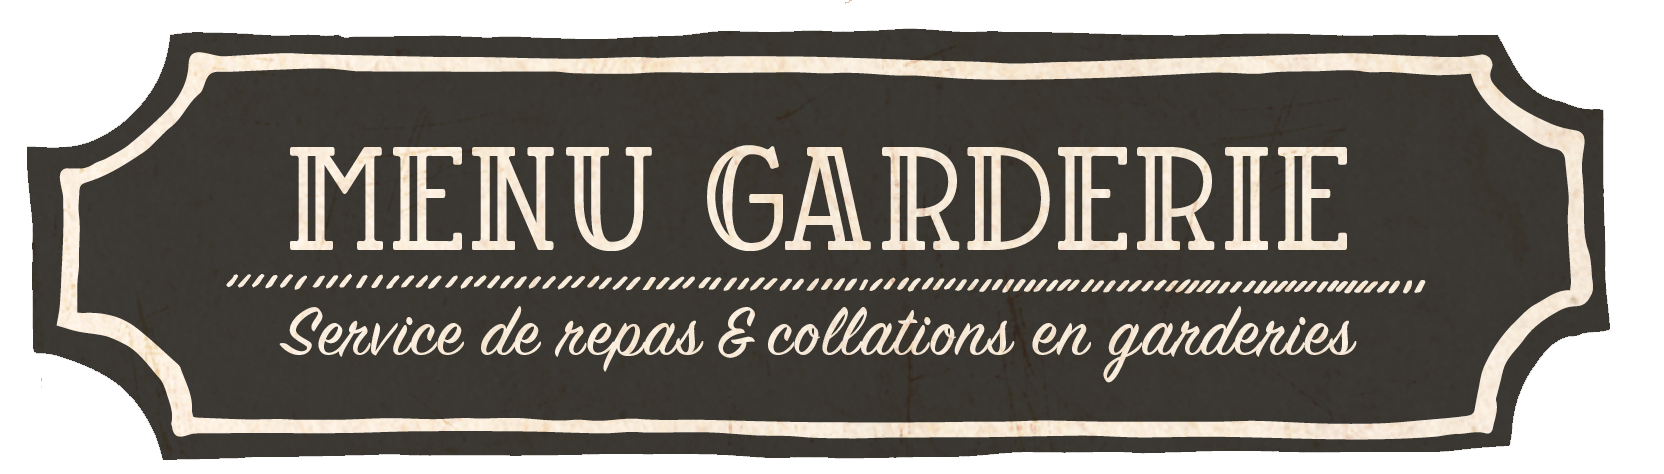 bouton garderies.png